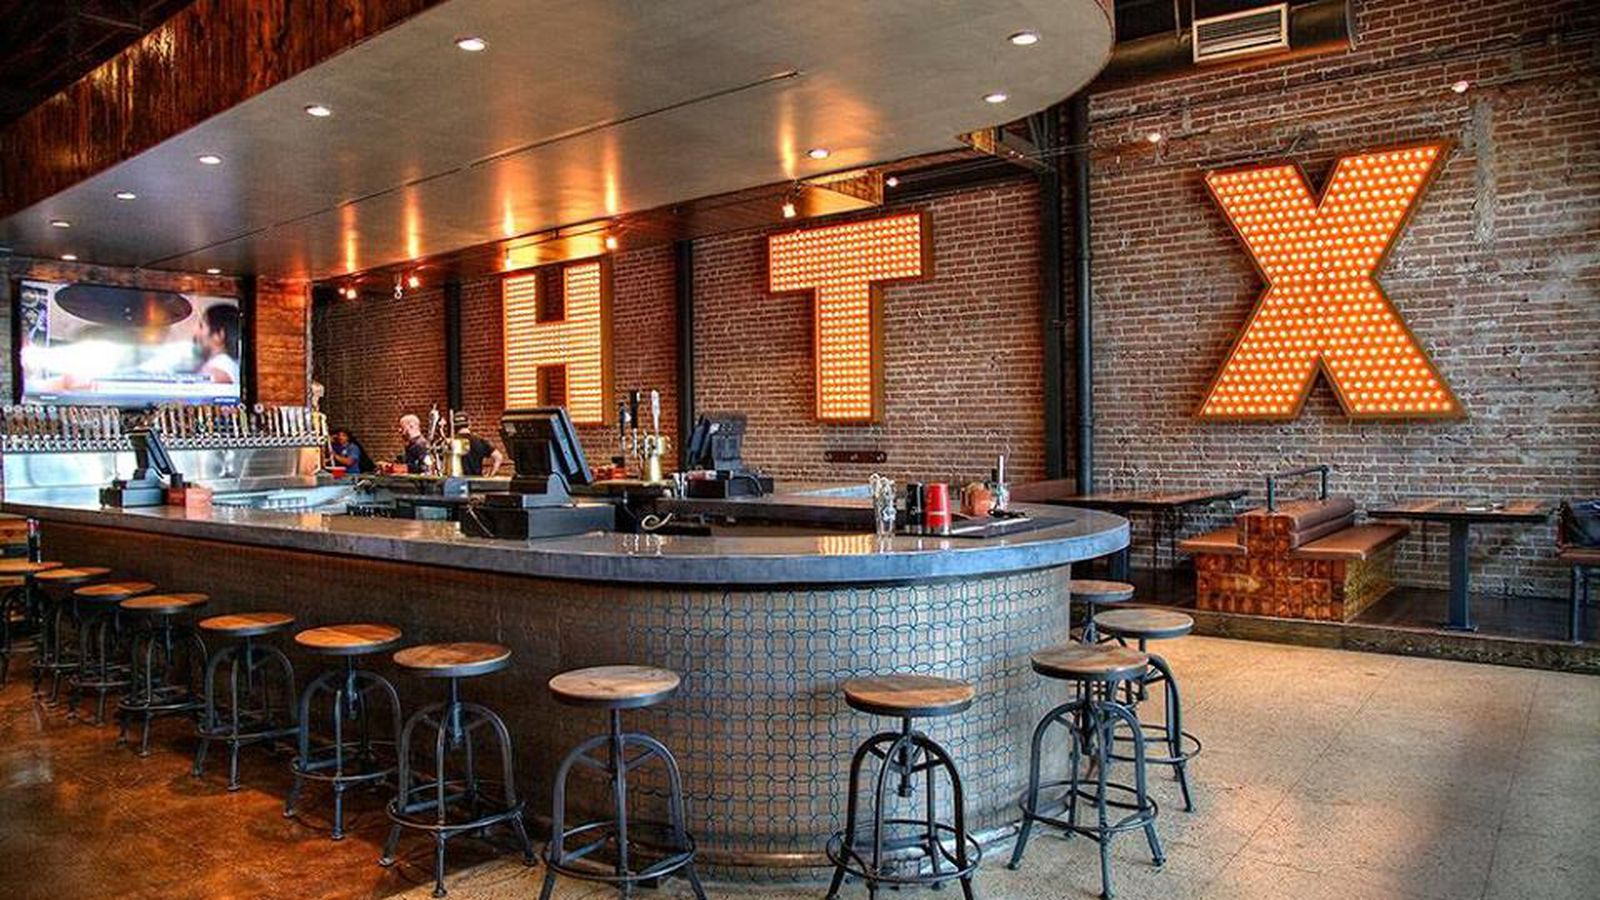 Bovine Amp Barley Soft Opens Downtown With Beers And Spirits Flowing Eater Houston